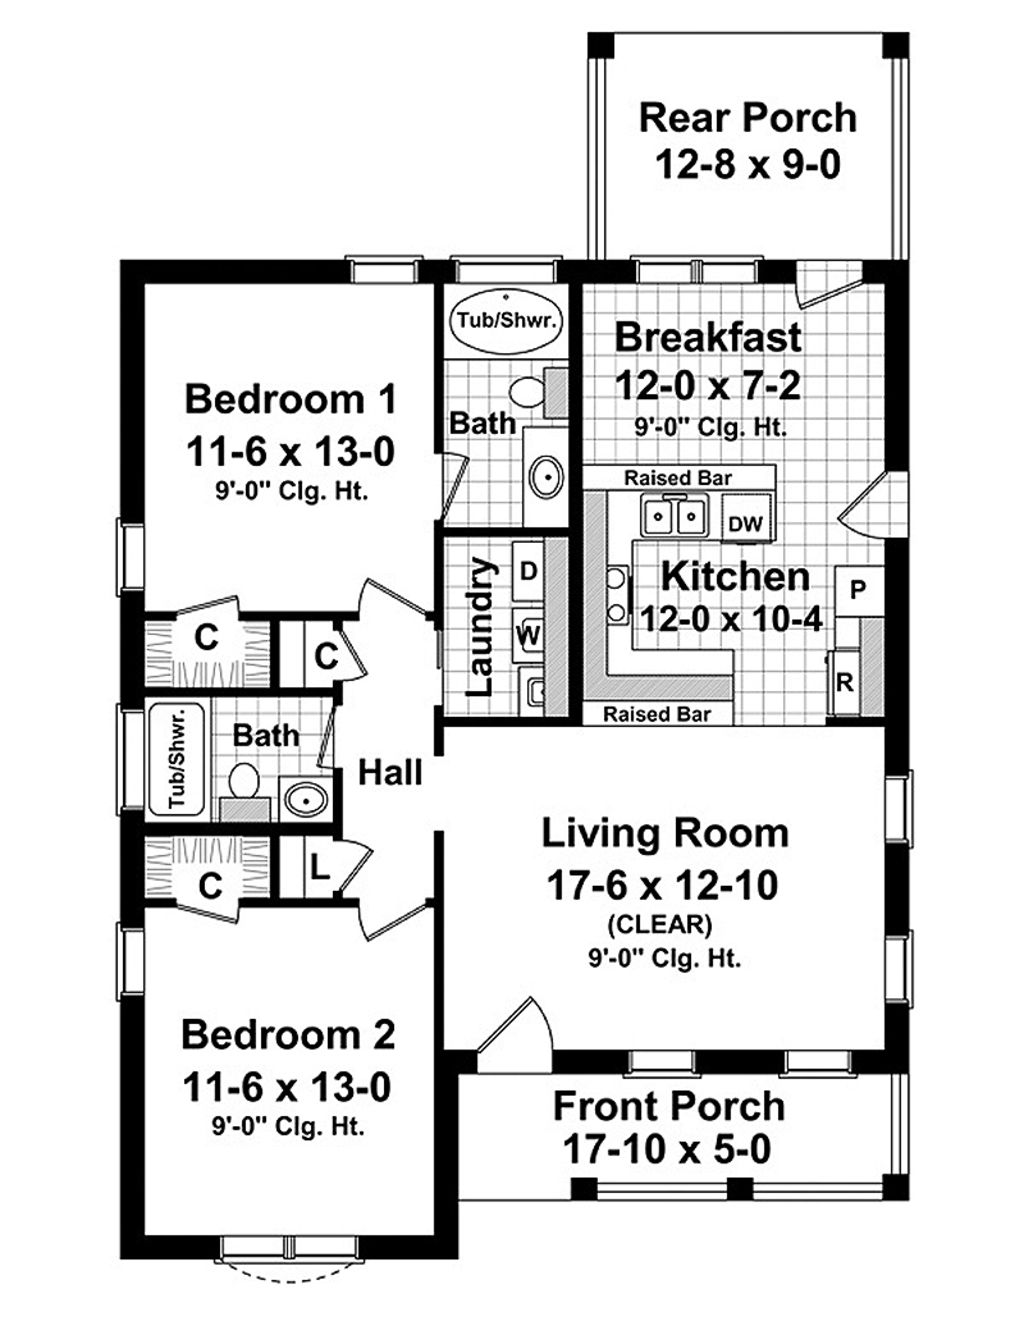 Cottage style house plan 2 beds baths 1100 sq ft for 12 by 12 room sq ft